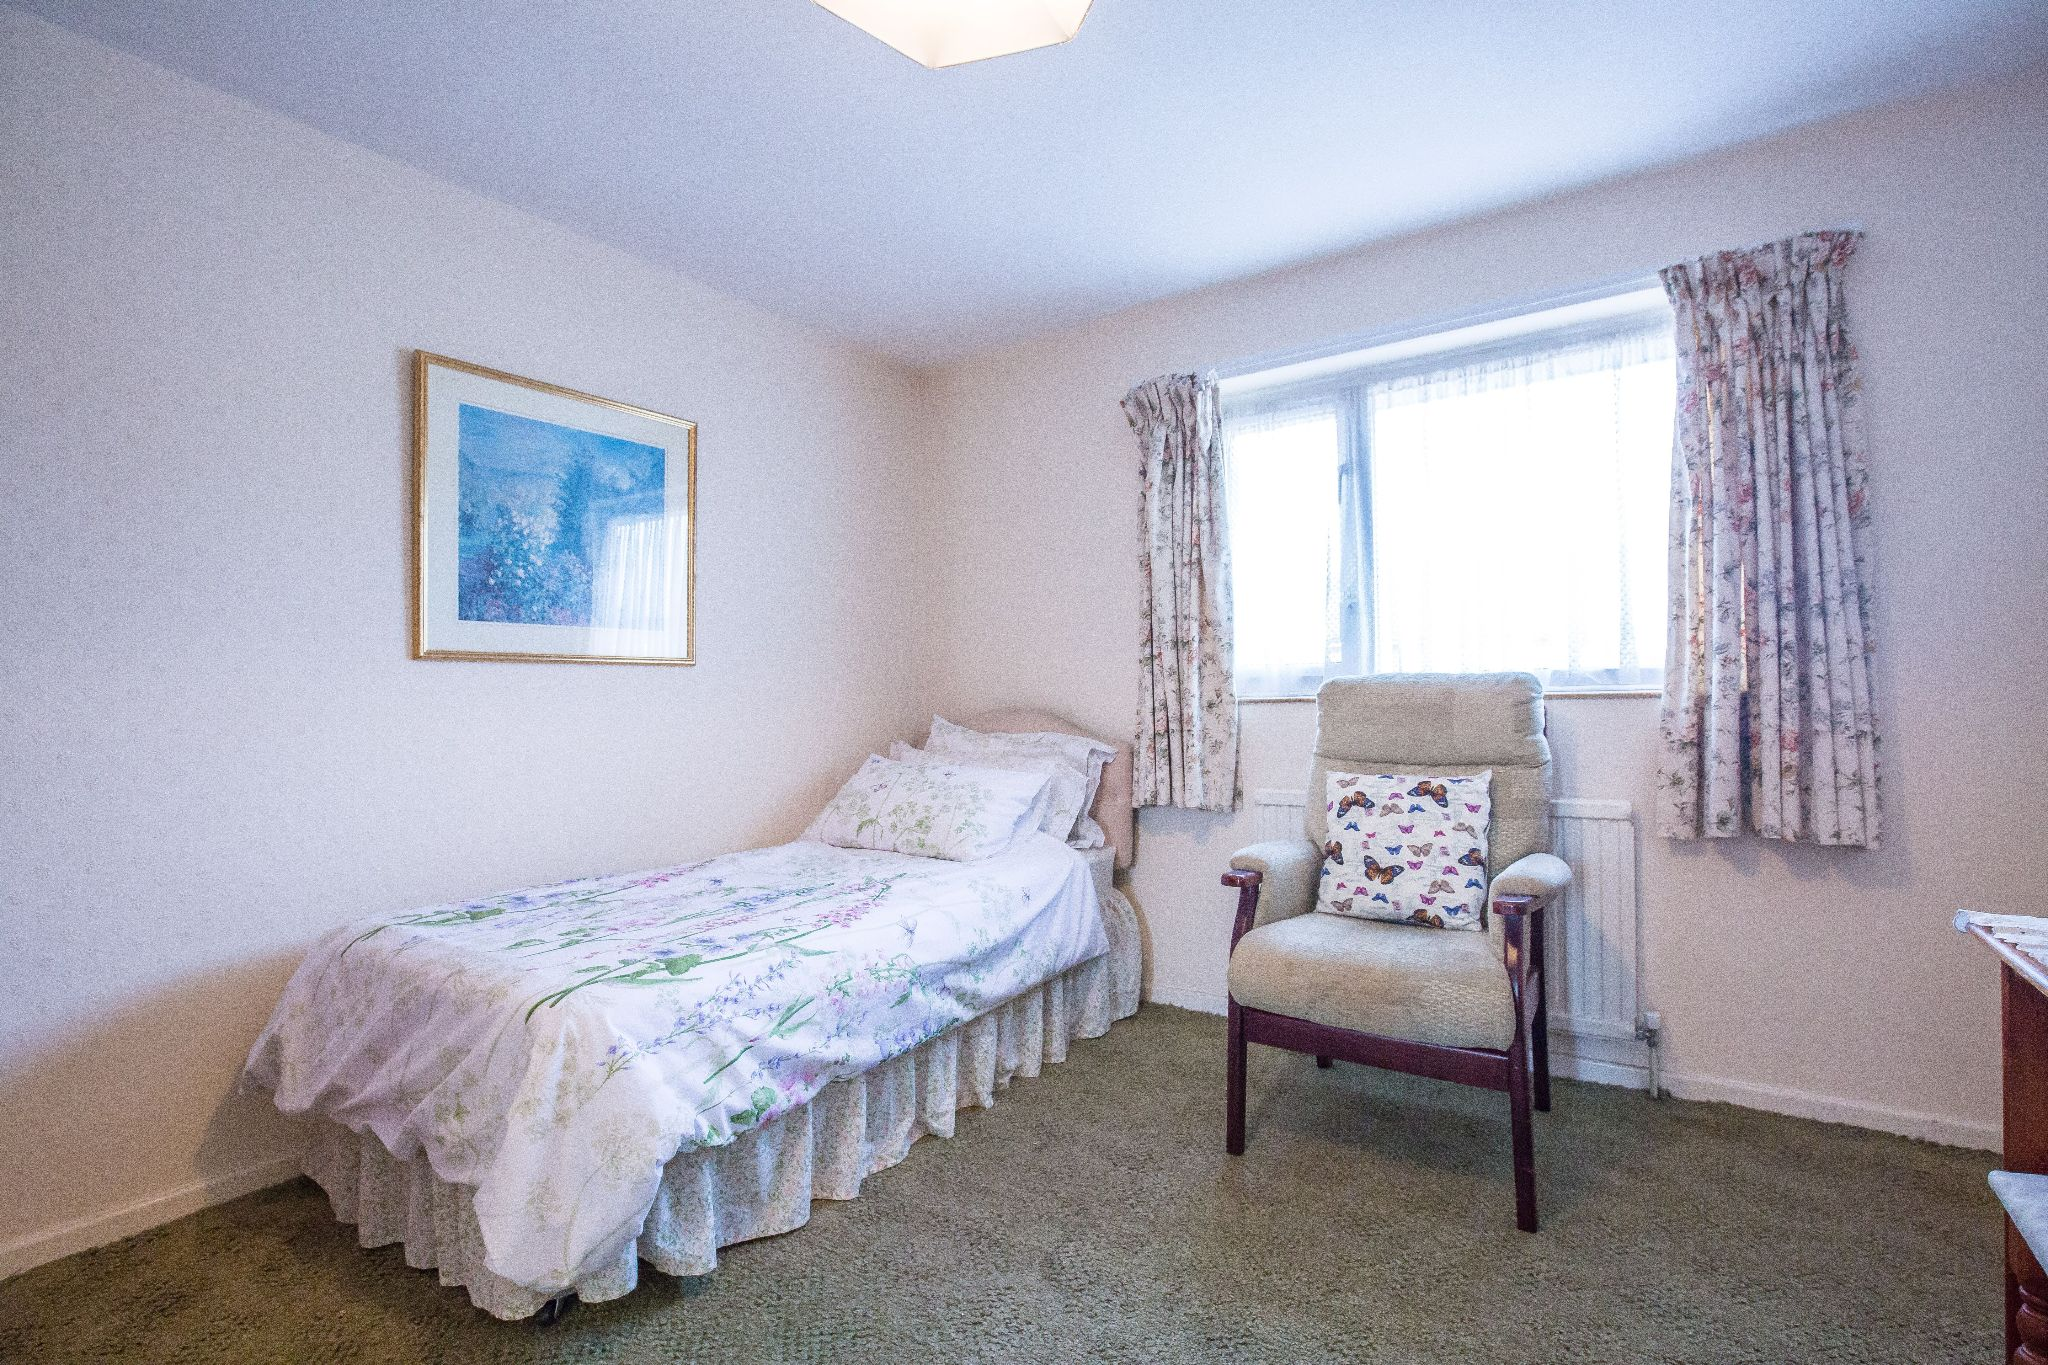 3 bedroom mid terraced house SSTC in Welham Green - Photograph 11